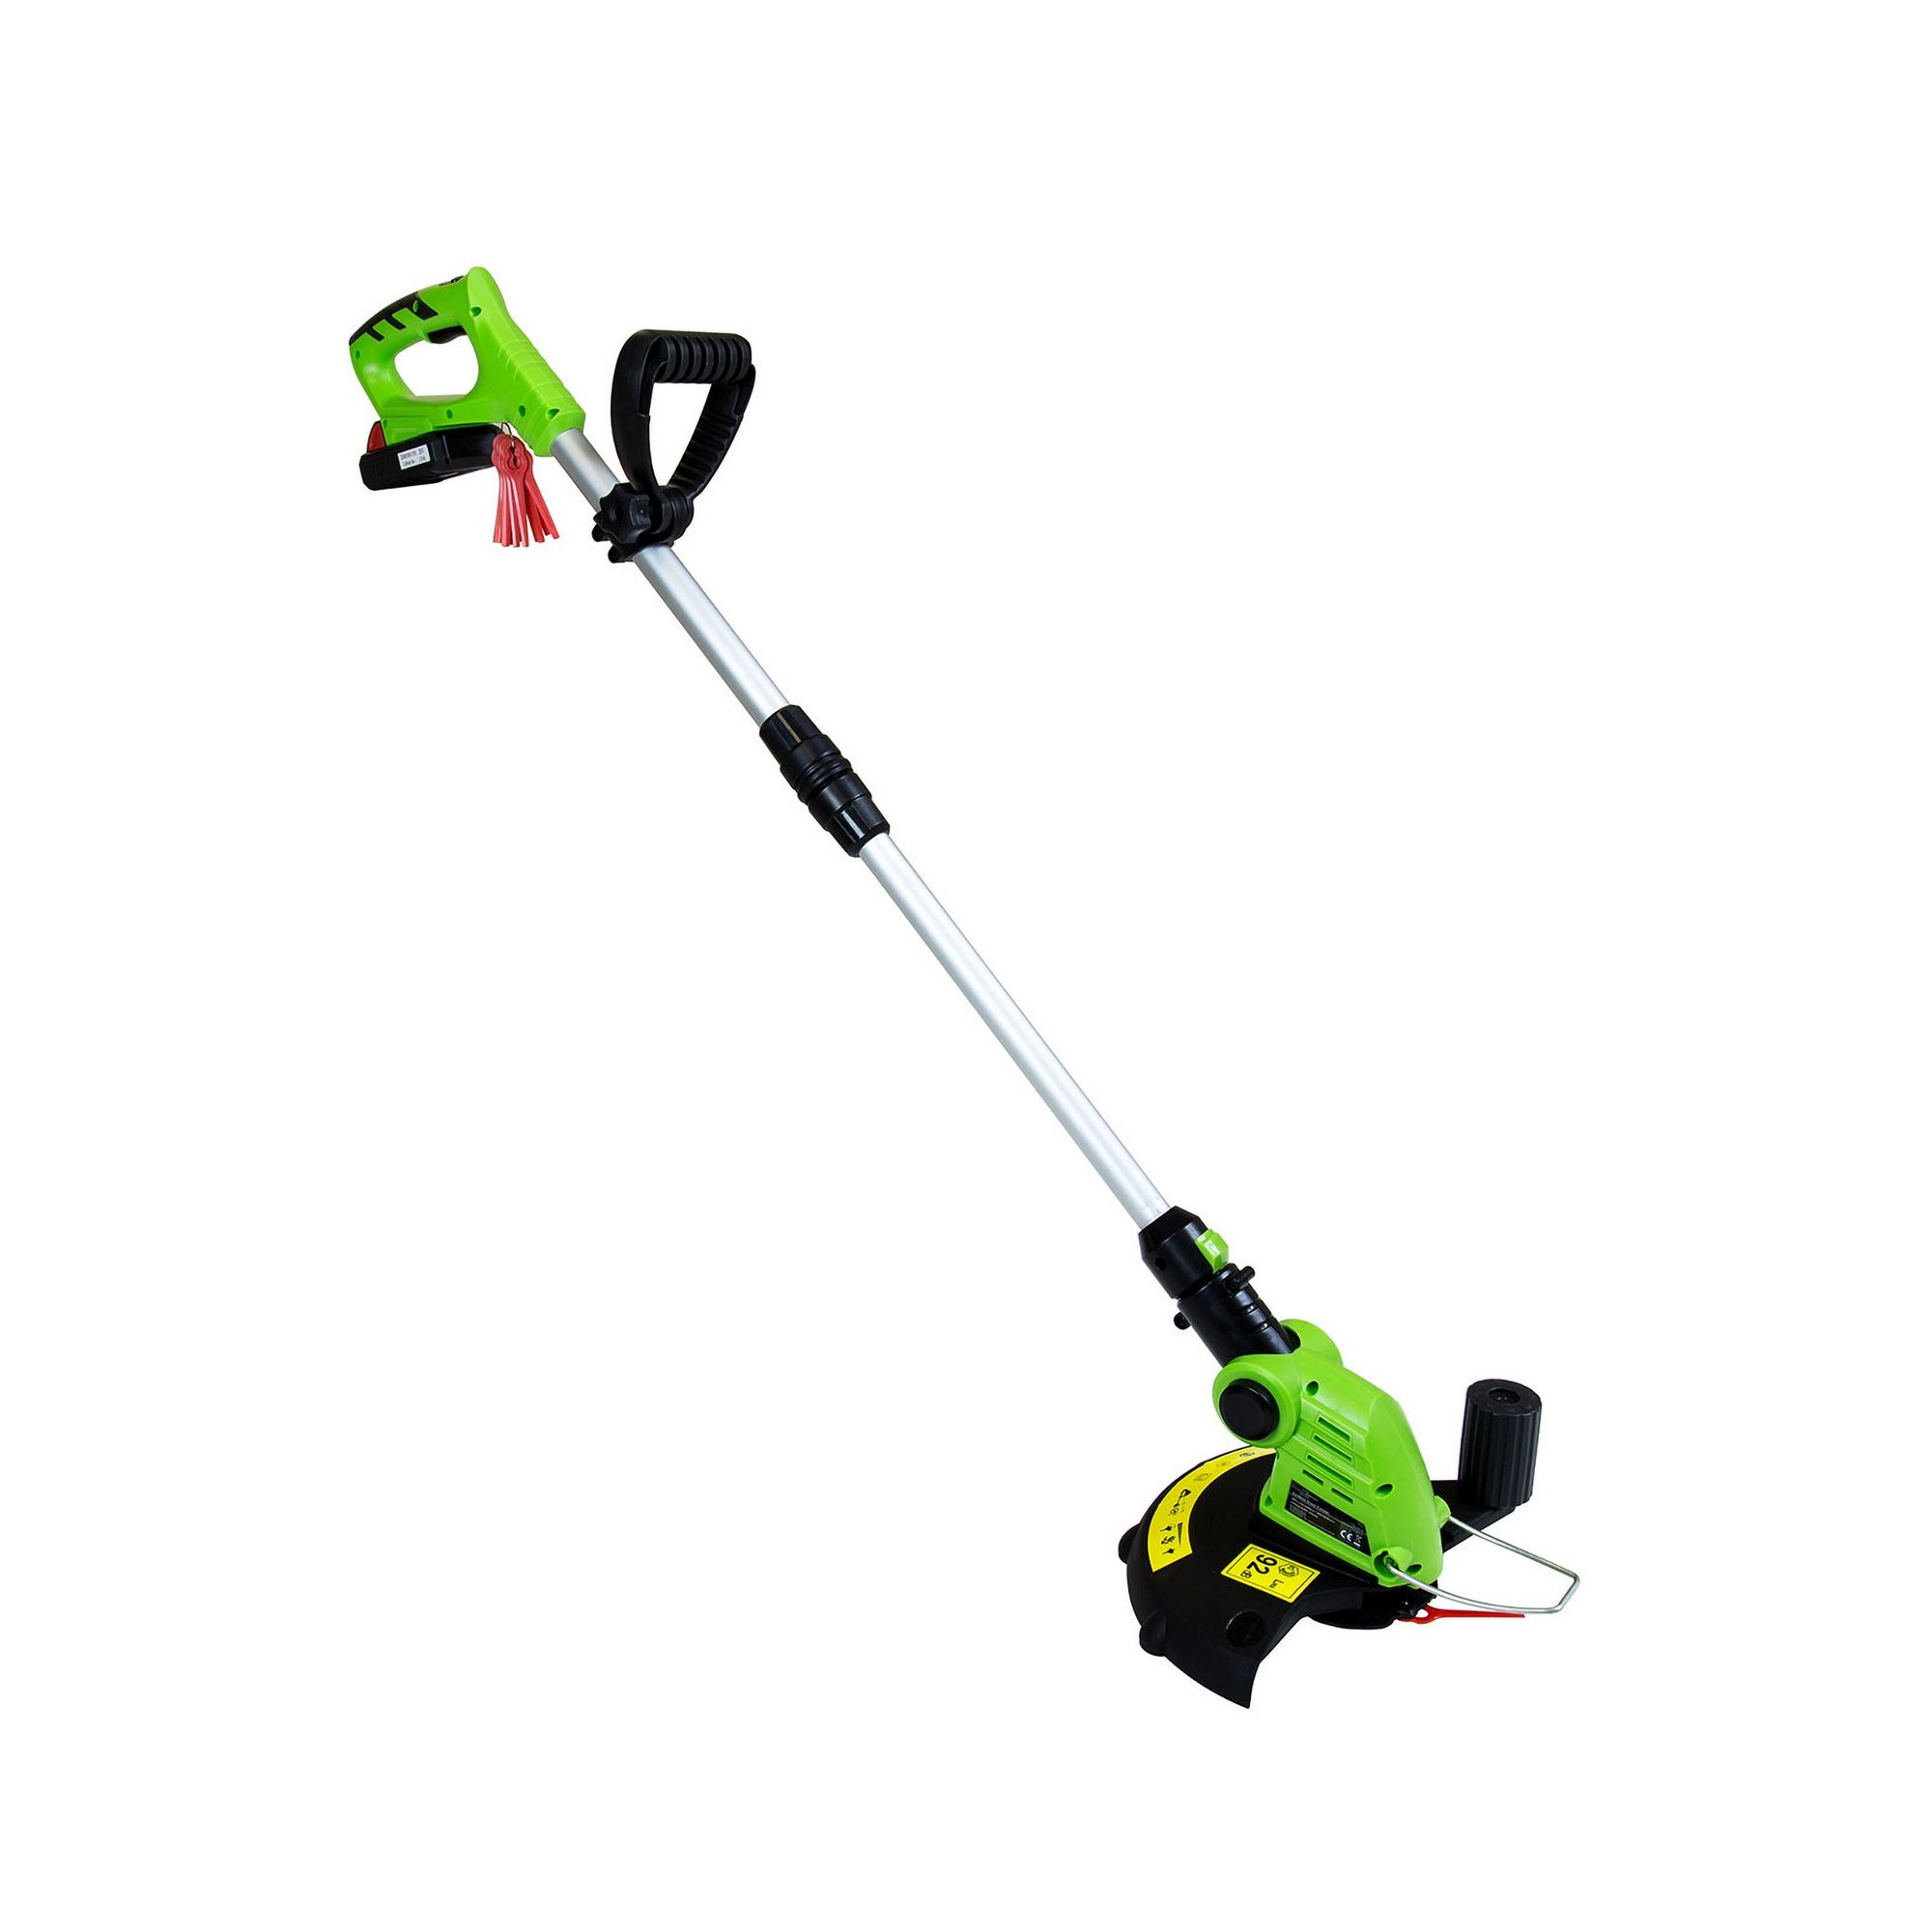 Image of Charles Bentley Portable Cordless Grass Trimmer